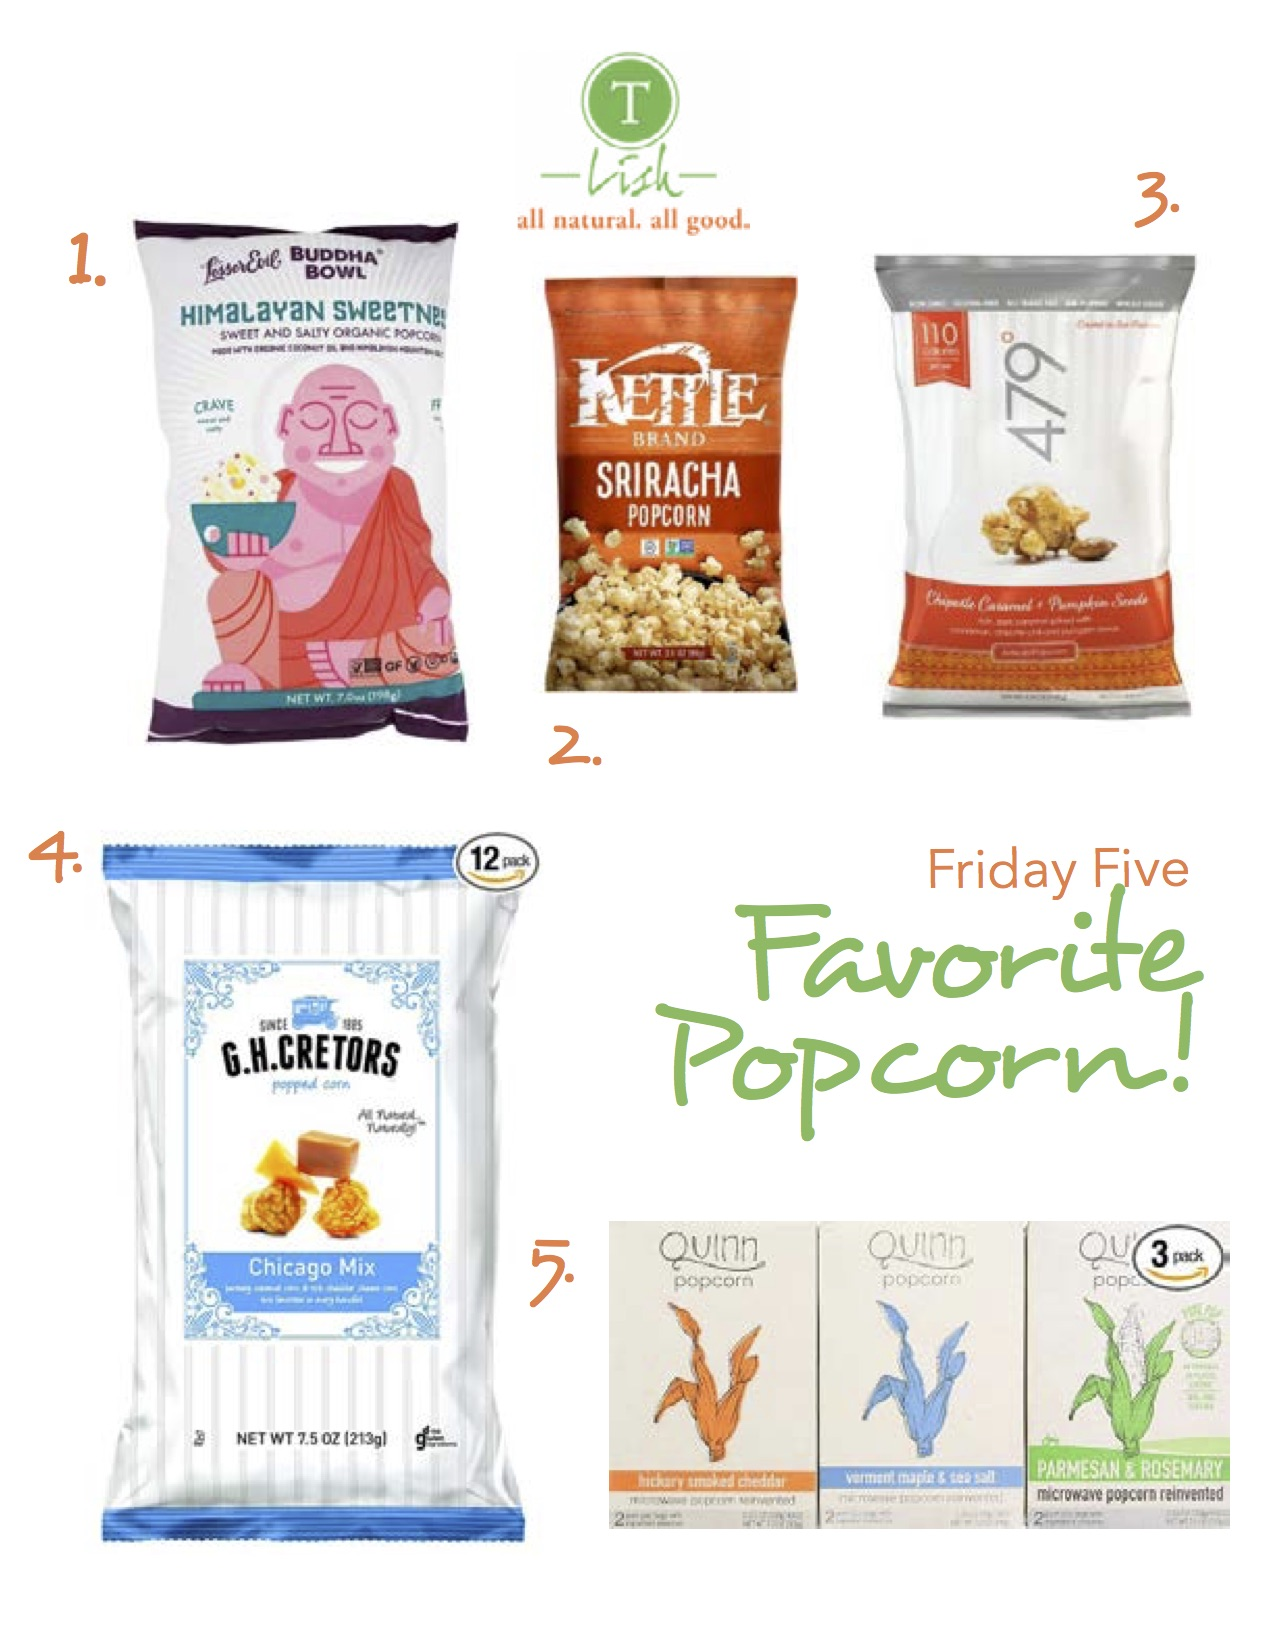 1.  Budda Bowl Organic Popcorn Himalayan Sweetness :  Himalayan Pink Salt and pure sugar cane give this popcorn the perfect balance between salty and sweet. Lesser Evil also uses organic coconut oil when making their products    2.  Kettle Foods Popcorn Sriracha :   Everything I love about hot sauce but on popcorn, making this the perfect guilt free snack!    3.  479 Degrees Chipotle Caramel + Pumpkin Seeds :   You may be thinking this is too many flavors thrown into one bag but it's surprisingly delicious. I love it as a snack in the fall and winter months.   4.   G.H. Cretors Popcorn Chicago Mix :   This stuff is ridiculous! You can't eat one handful. It's one of my guilty pleasures. I've been known to pack this in my suitcase.     5.  Quinn Popcorn: Microwave Popcorn Reinvented :   I couldn't resist since one of my sweet son's is named Quinn. This is microwave popcorn reinvented! My fave is the Rosemary and Parmesan.